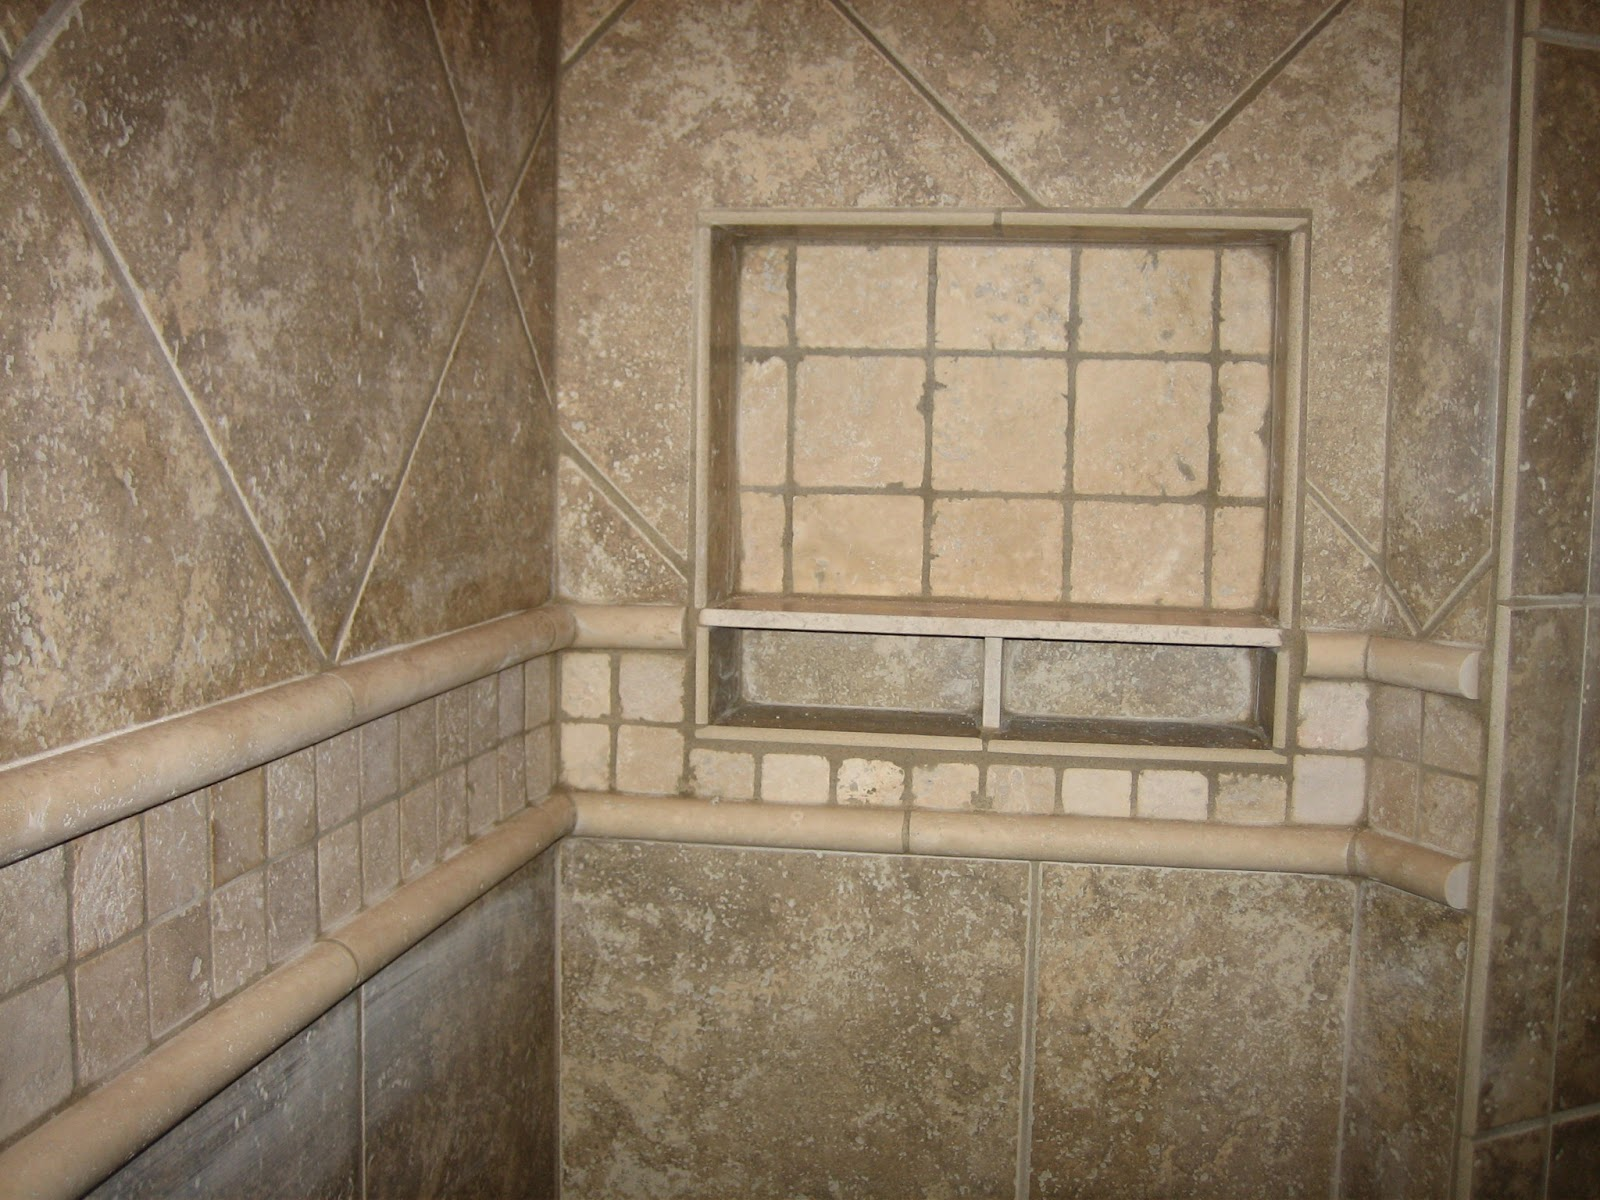 walk in shower tile design ideas tile design ideas tile walk. Tile shower design ideas